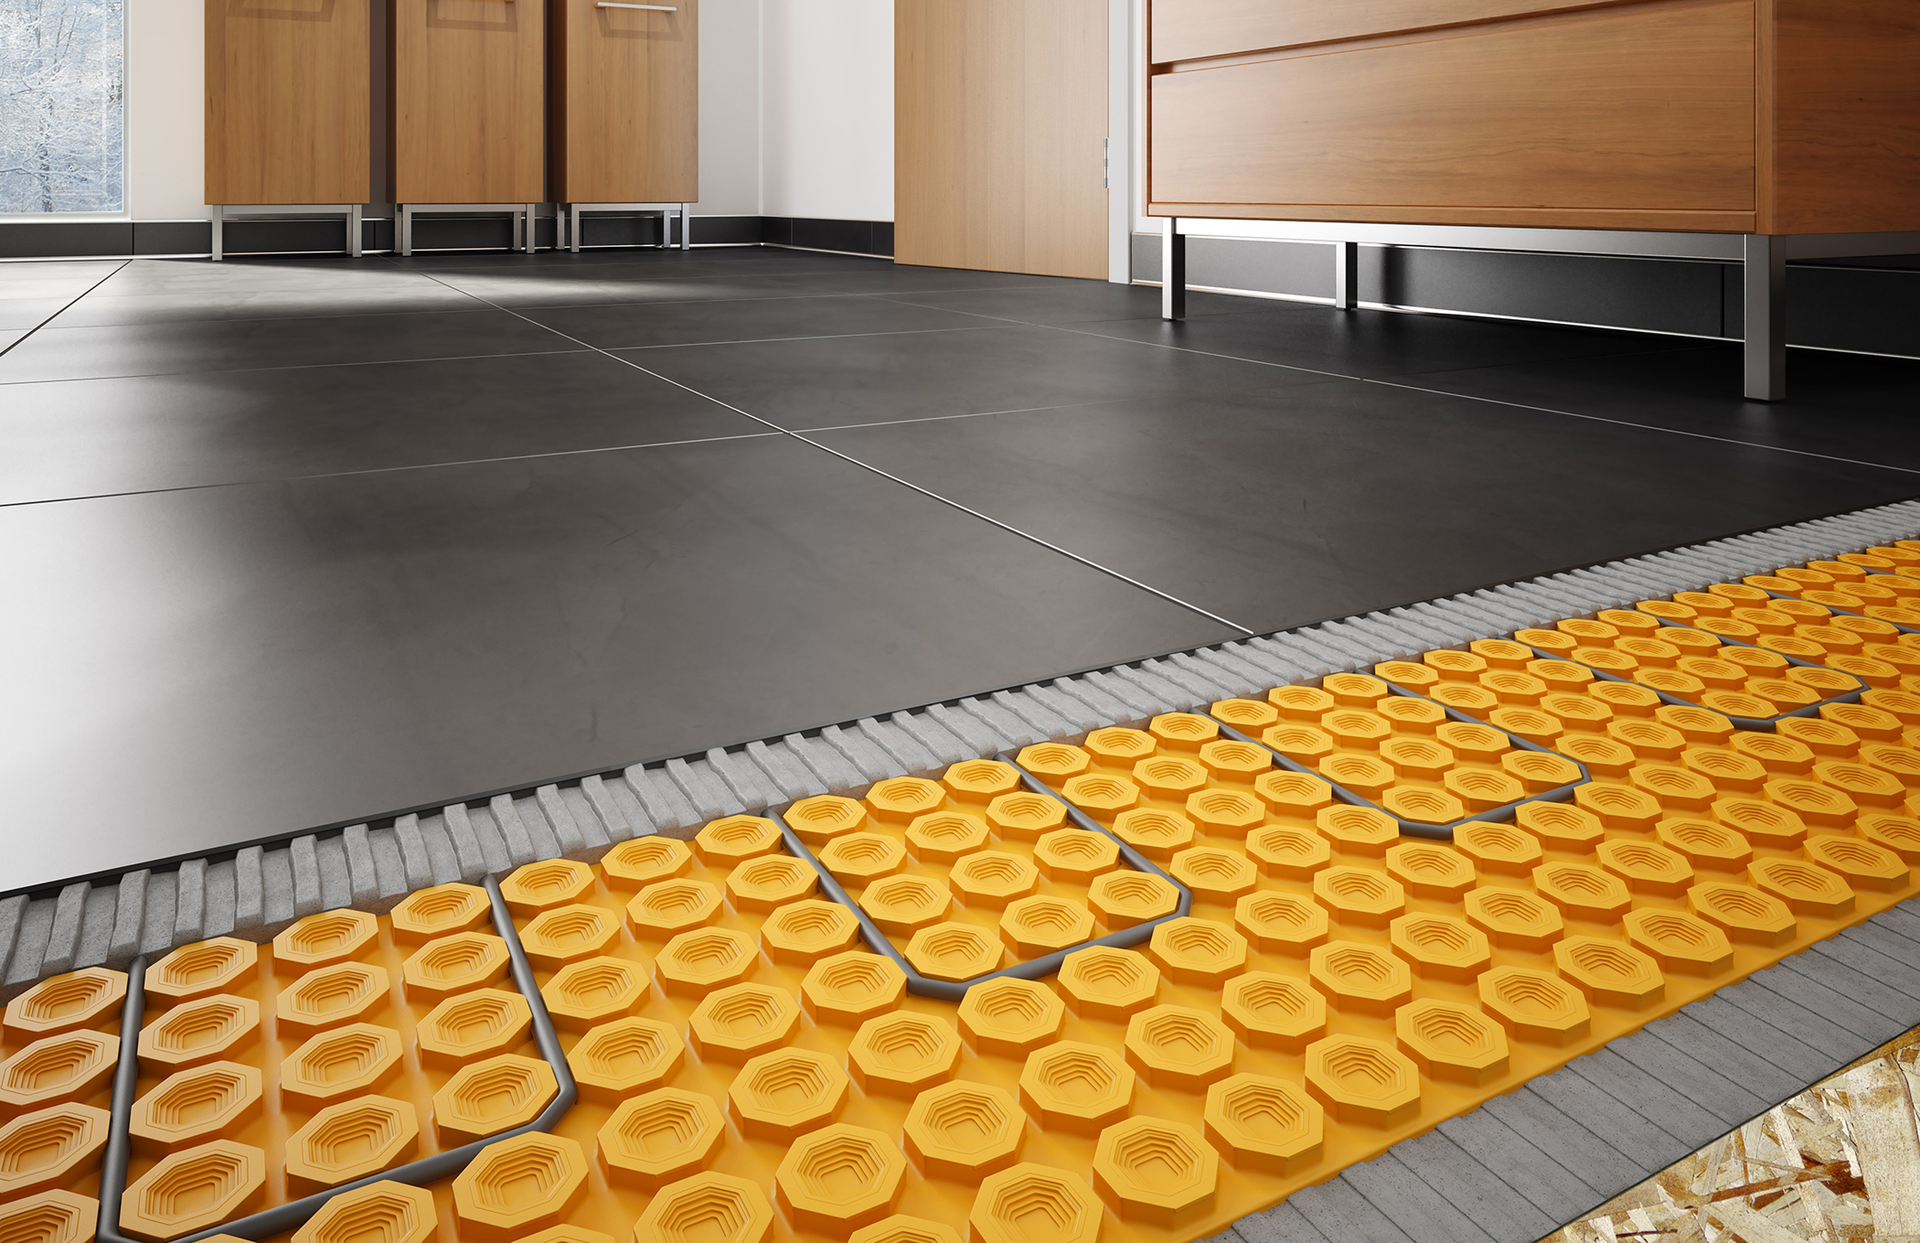 Heated tile flooring